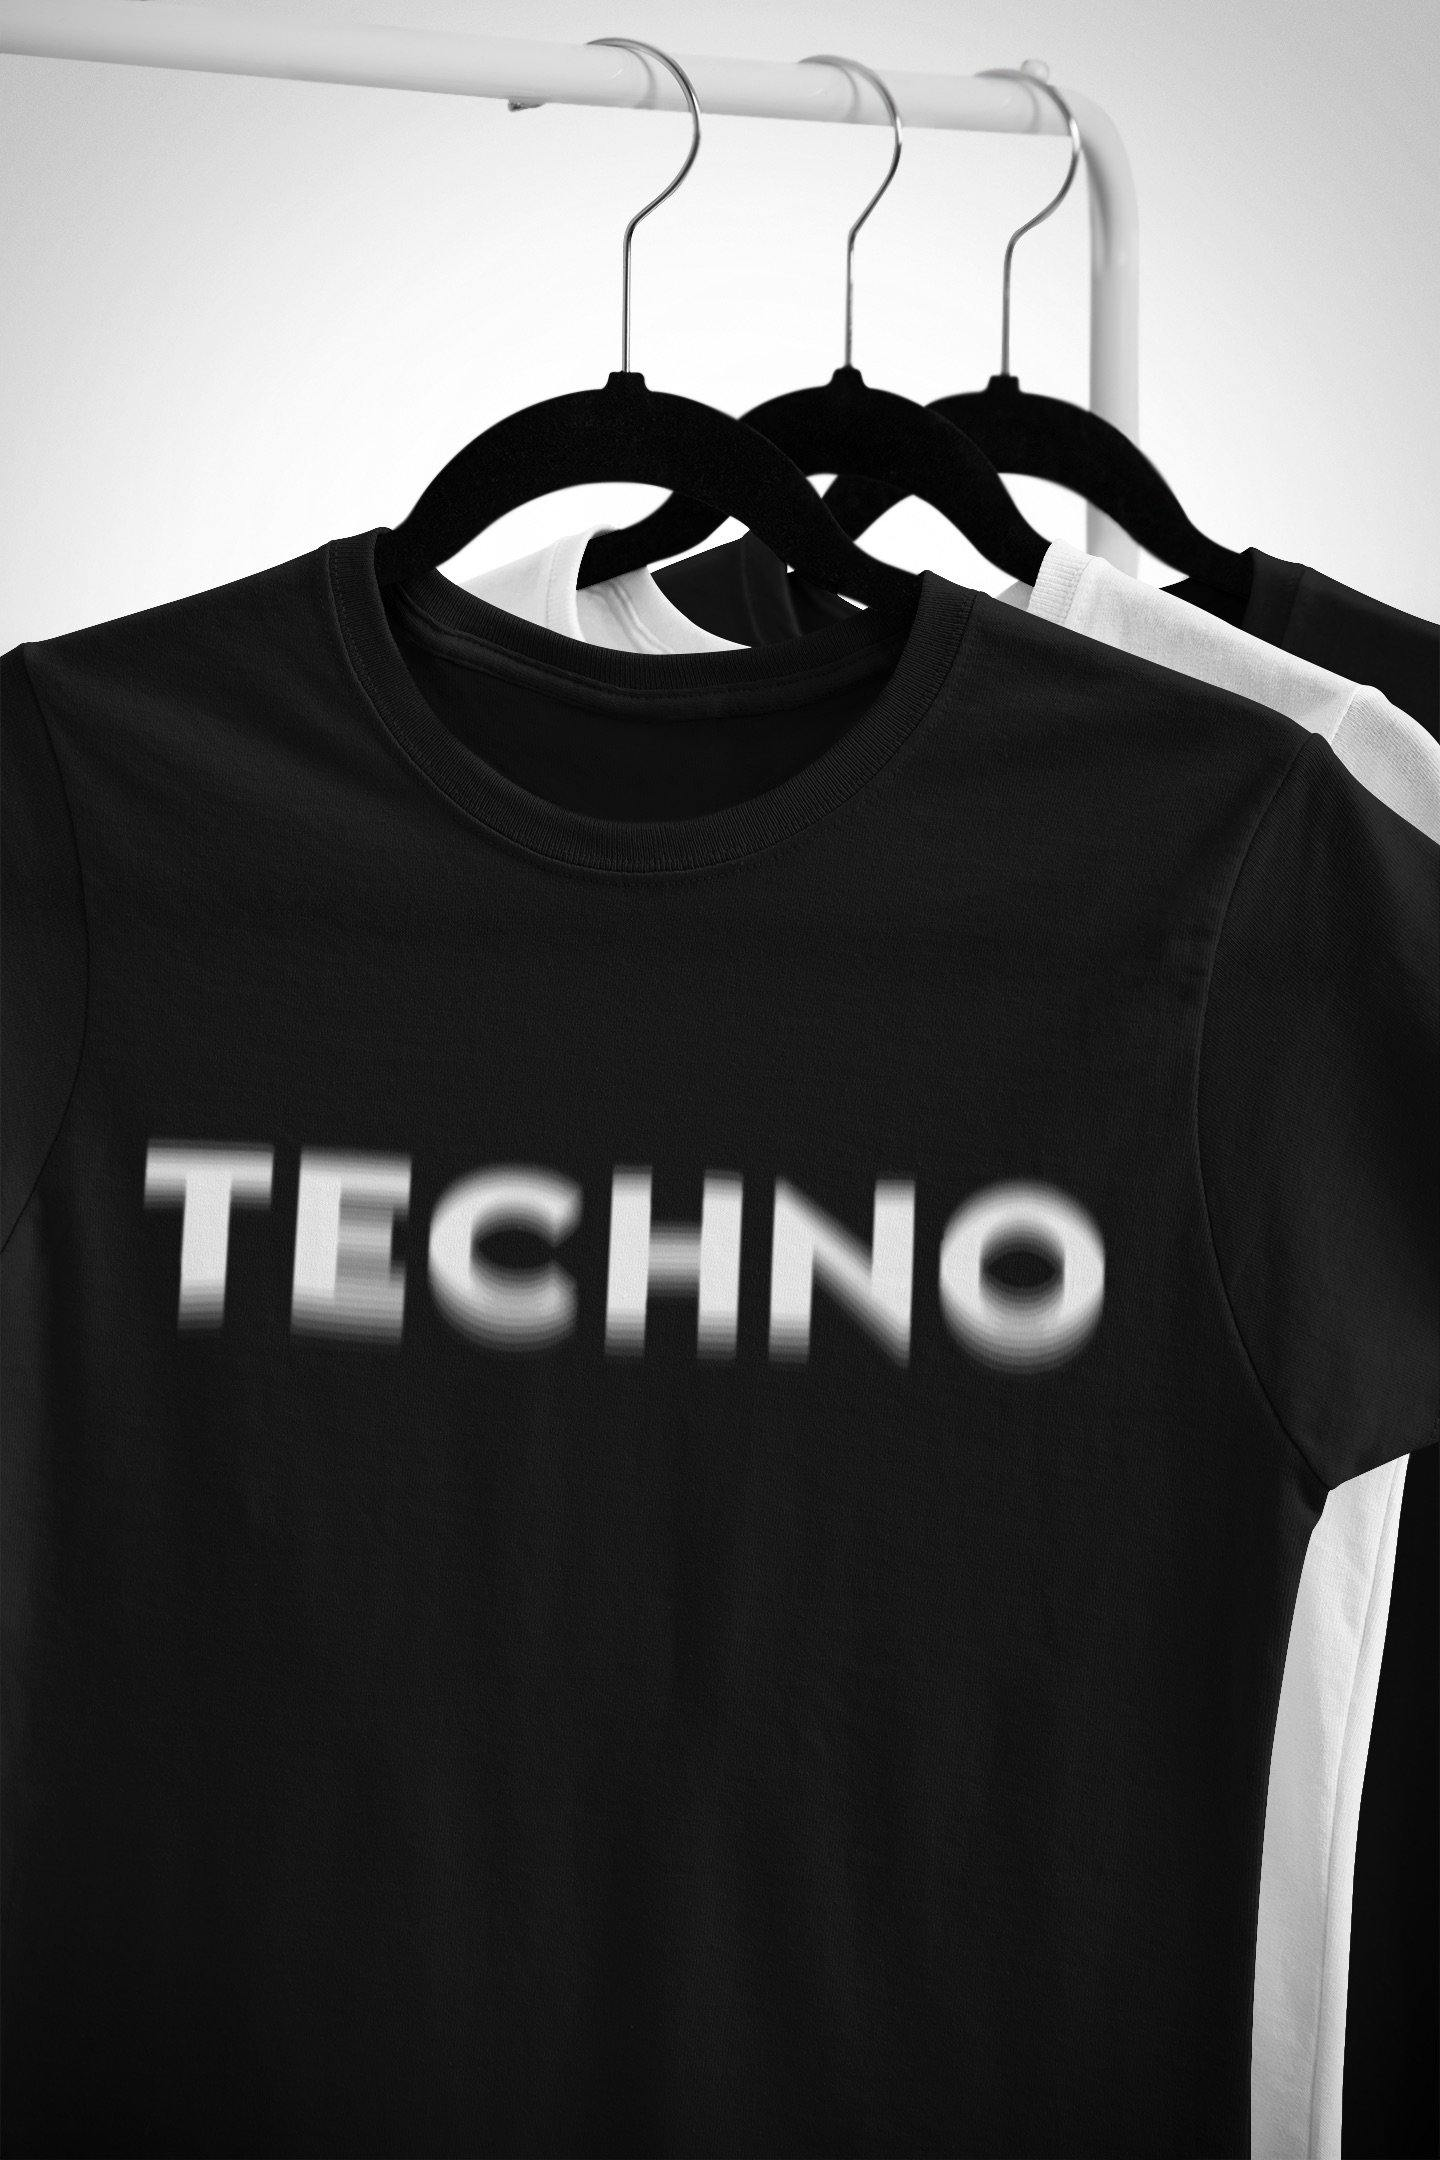 Softstyle Unisex T-shirt Techno Visual Effect